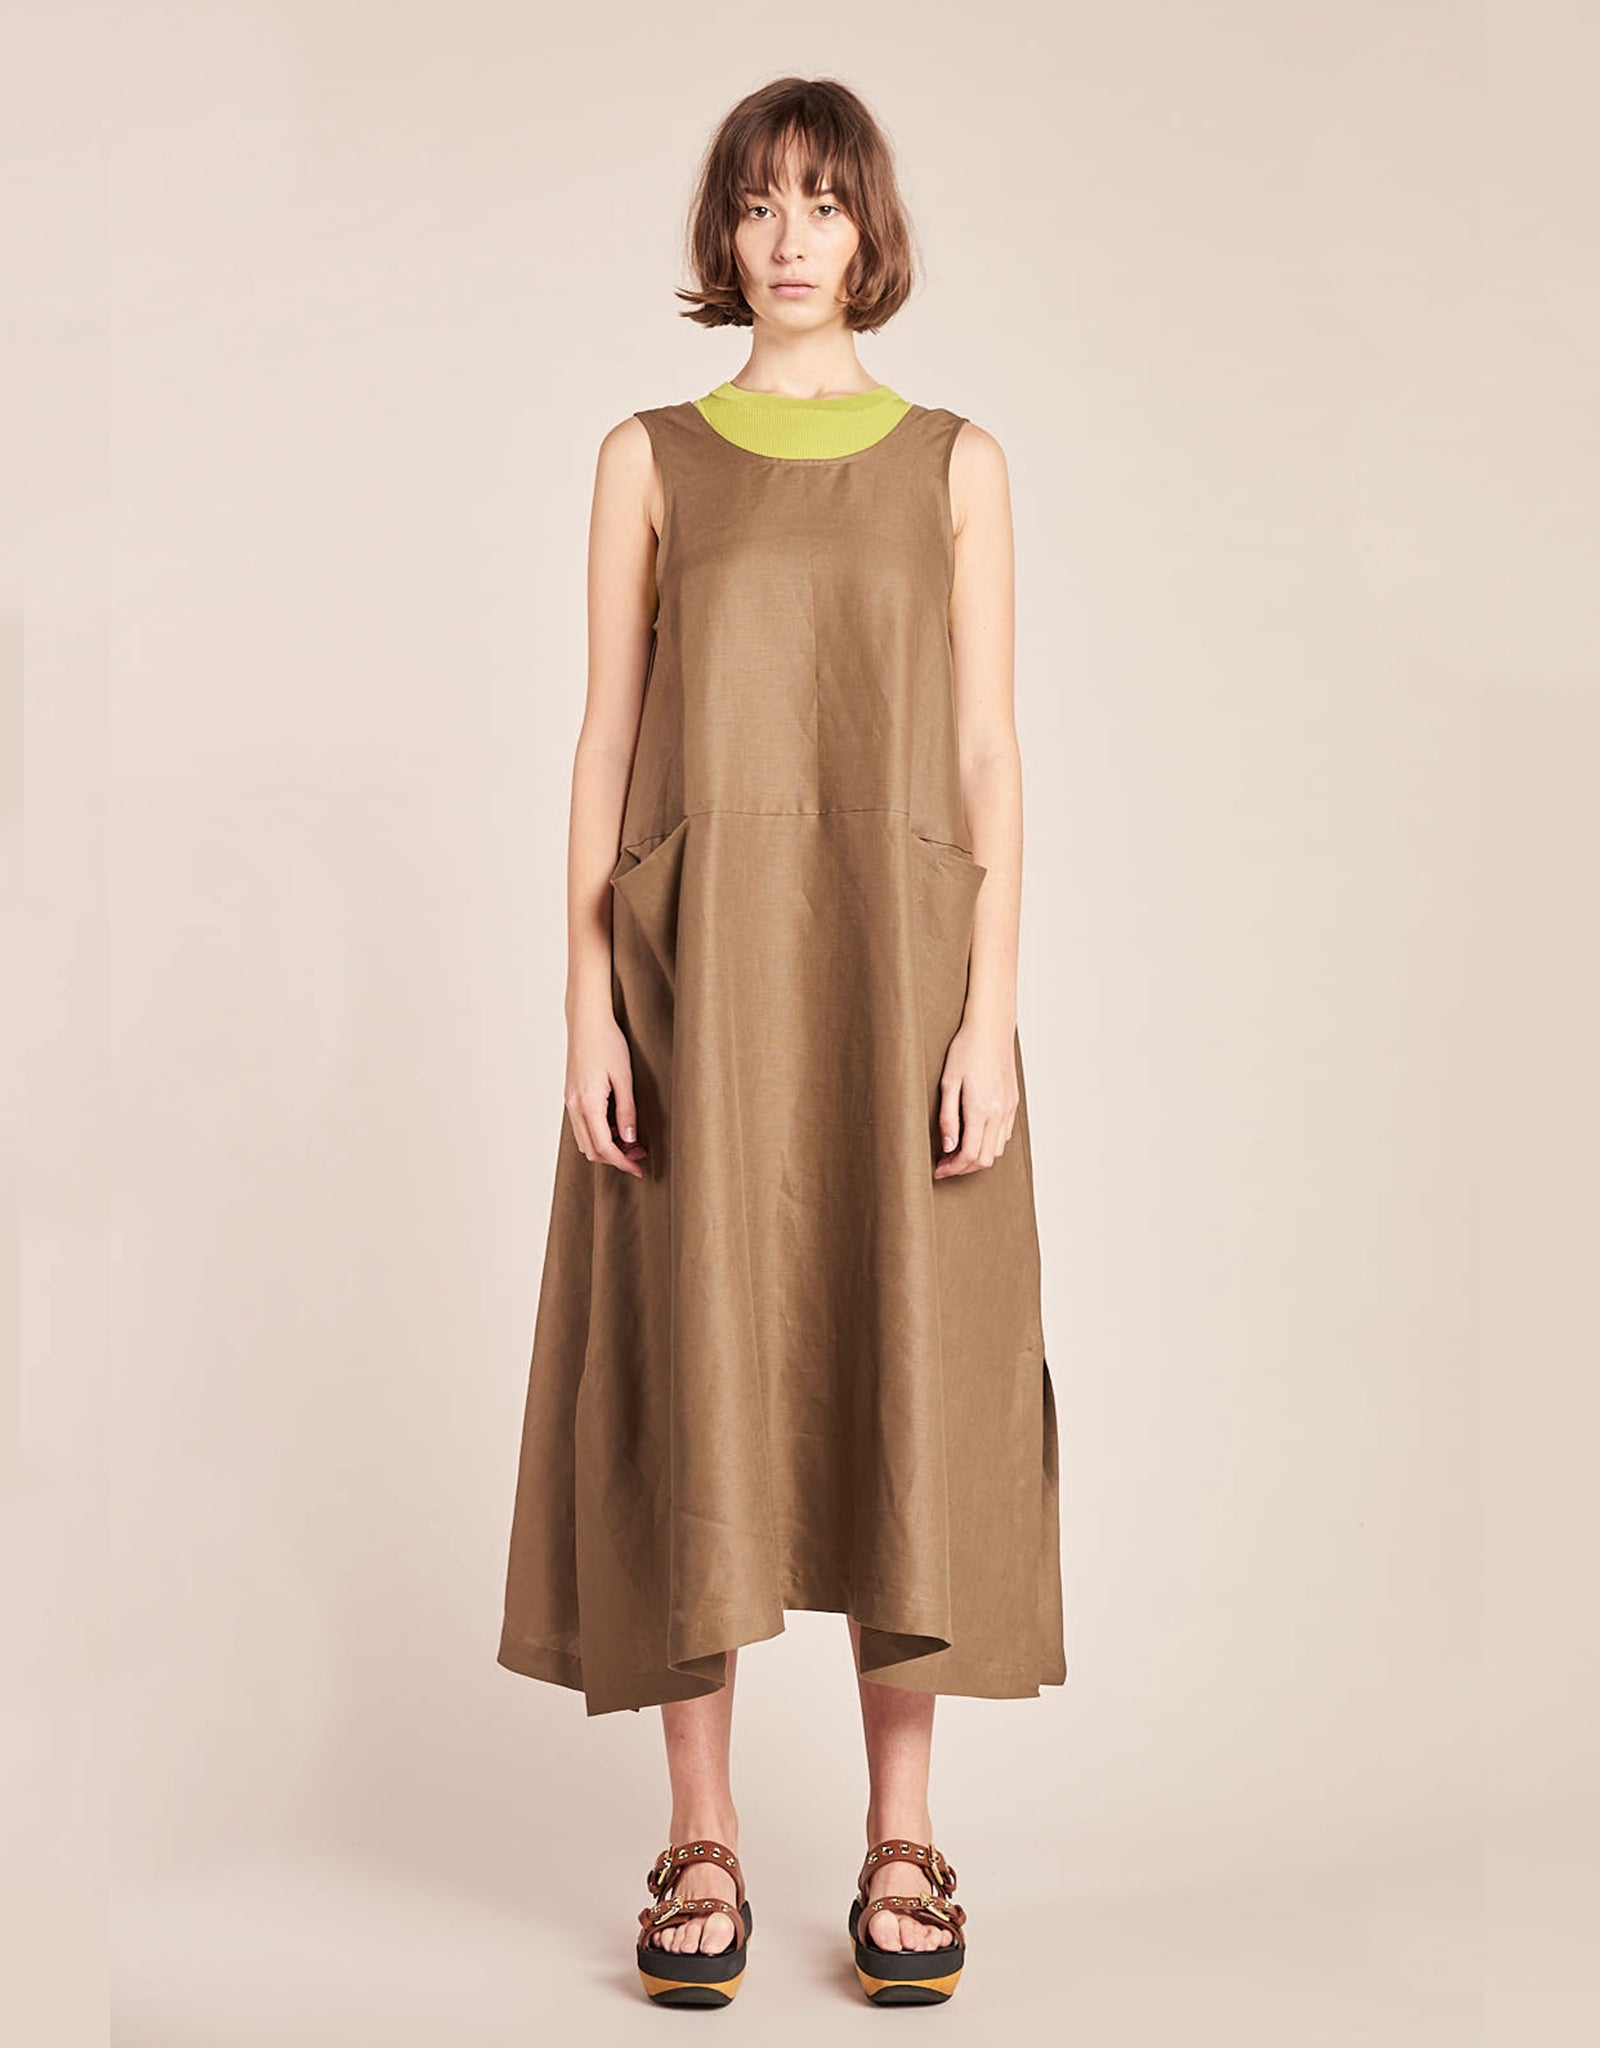 Model wears Kloke Luna Dress in Tobacco, styled layered over tank. Available at FAWN Toronto.